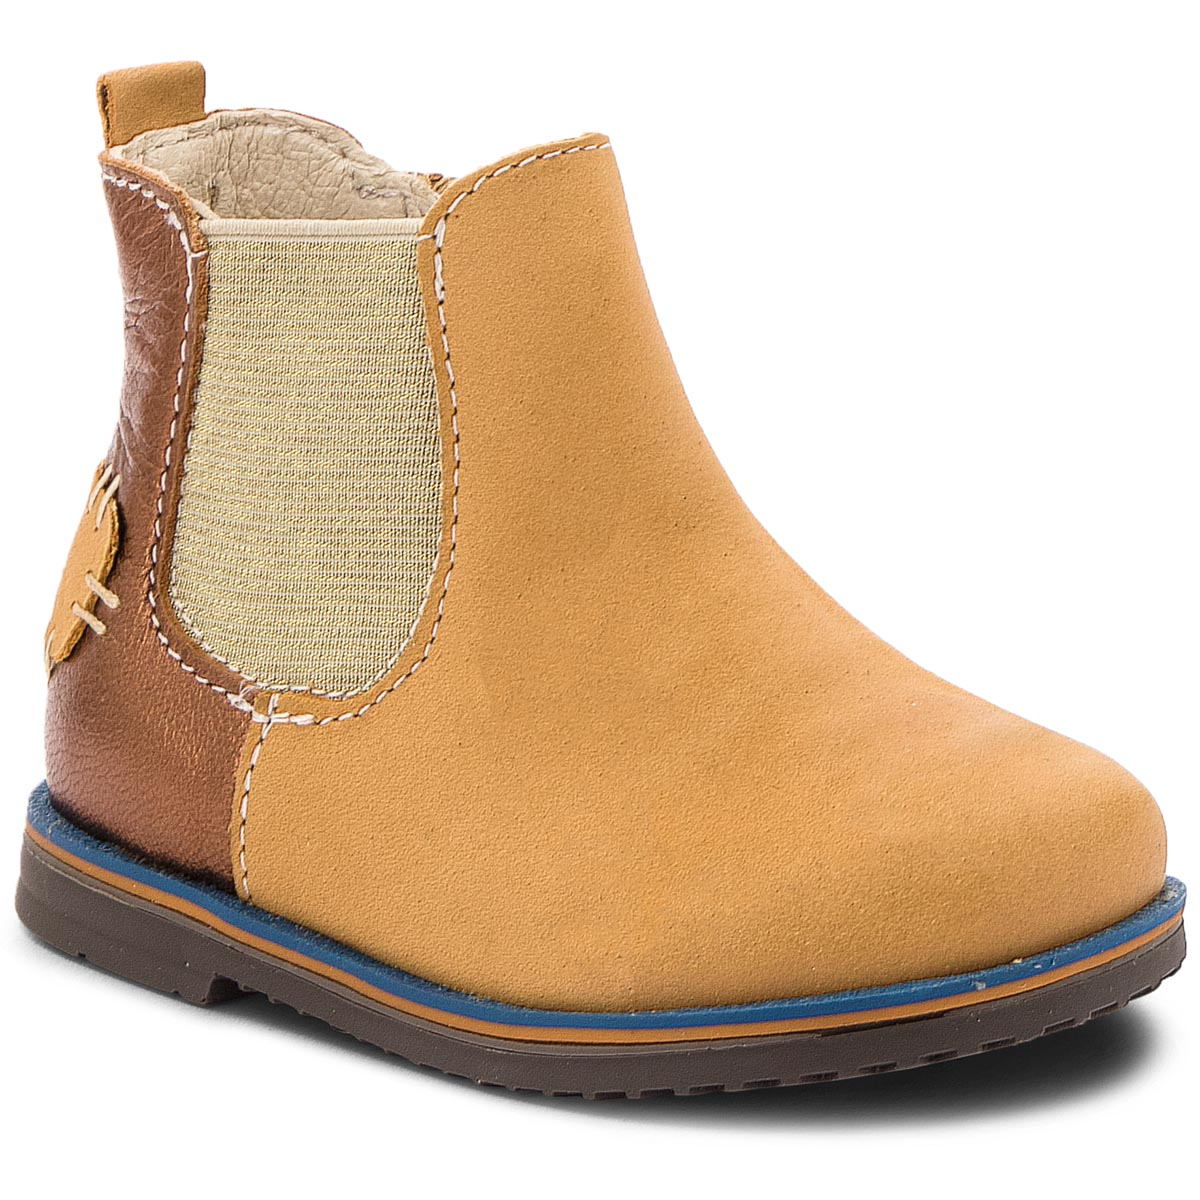 Boots RENBUT - 13-1479 Miodowy